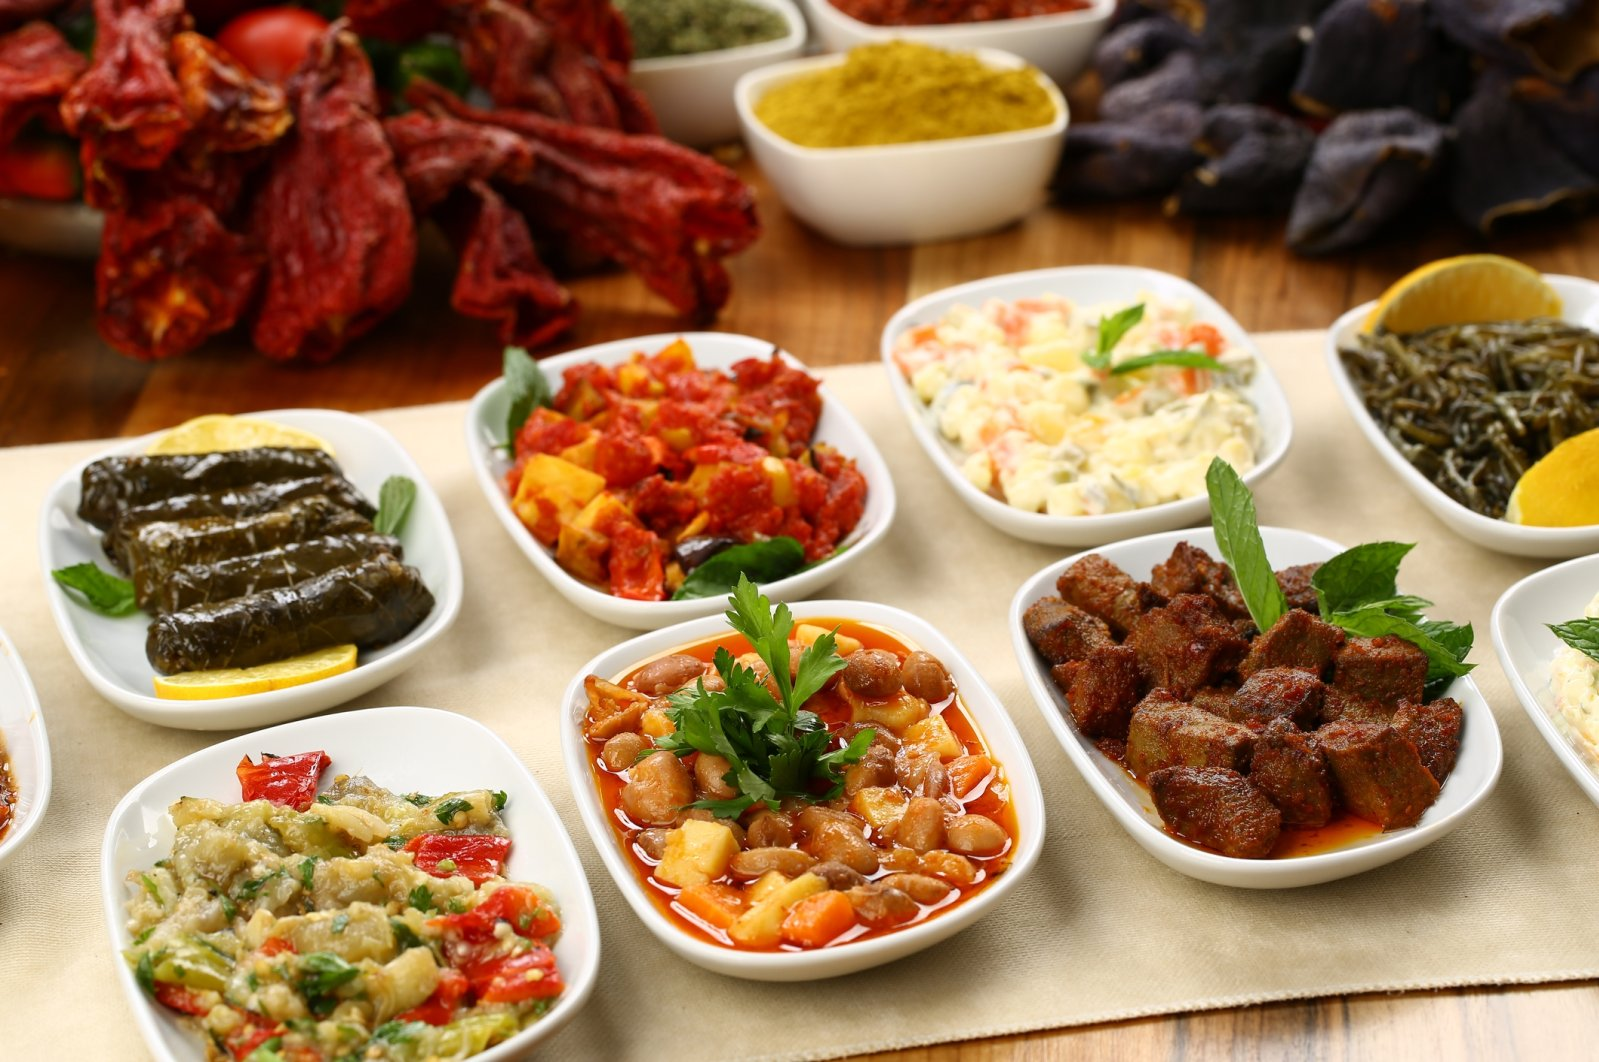 Mezes perfectly represent Turkish cuisine and food culture. (iStock Photo)